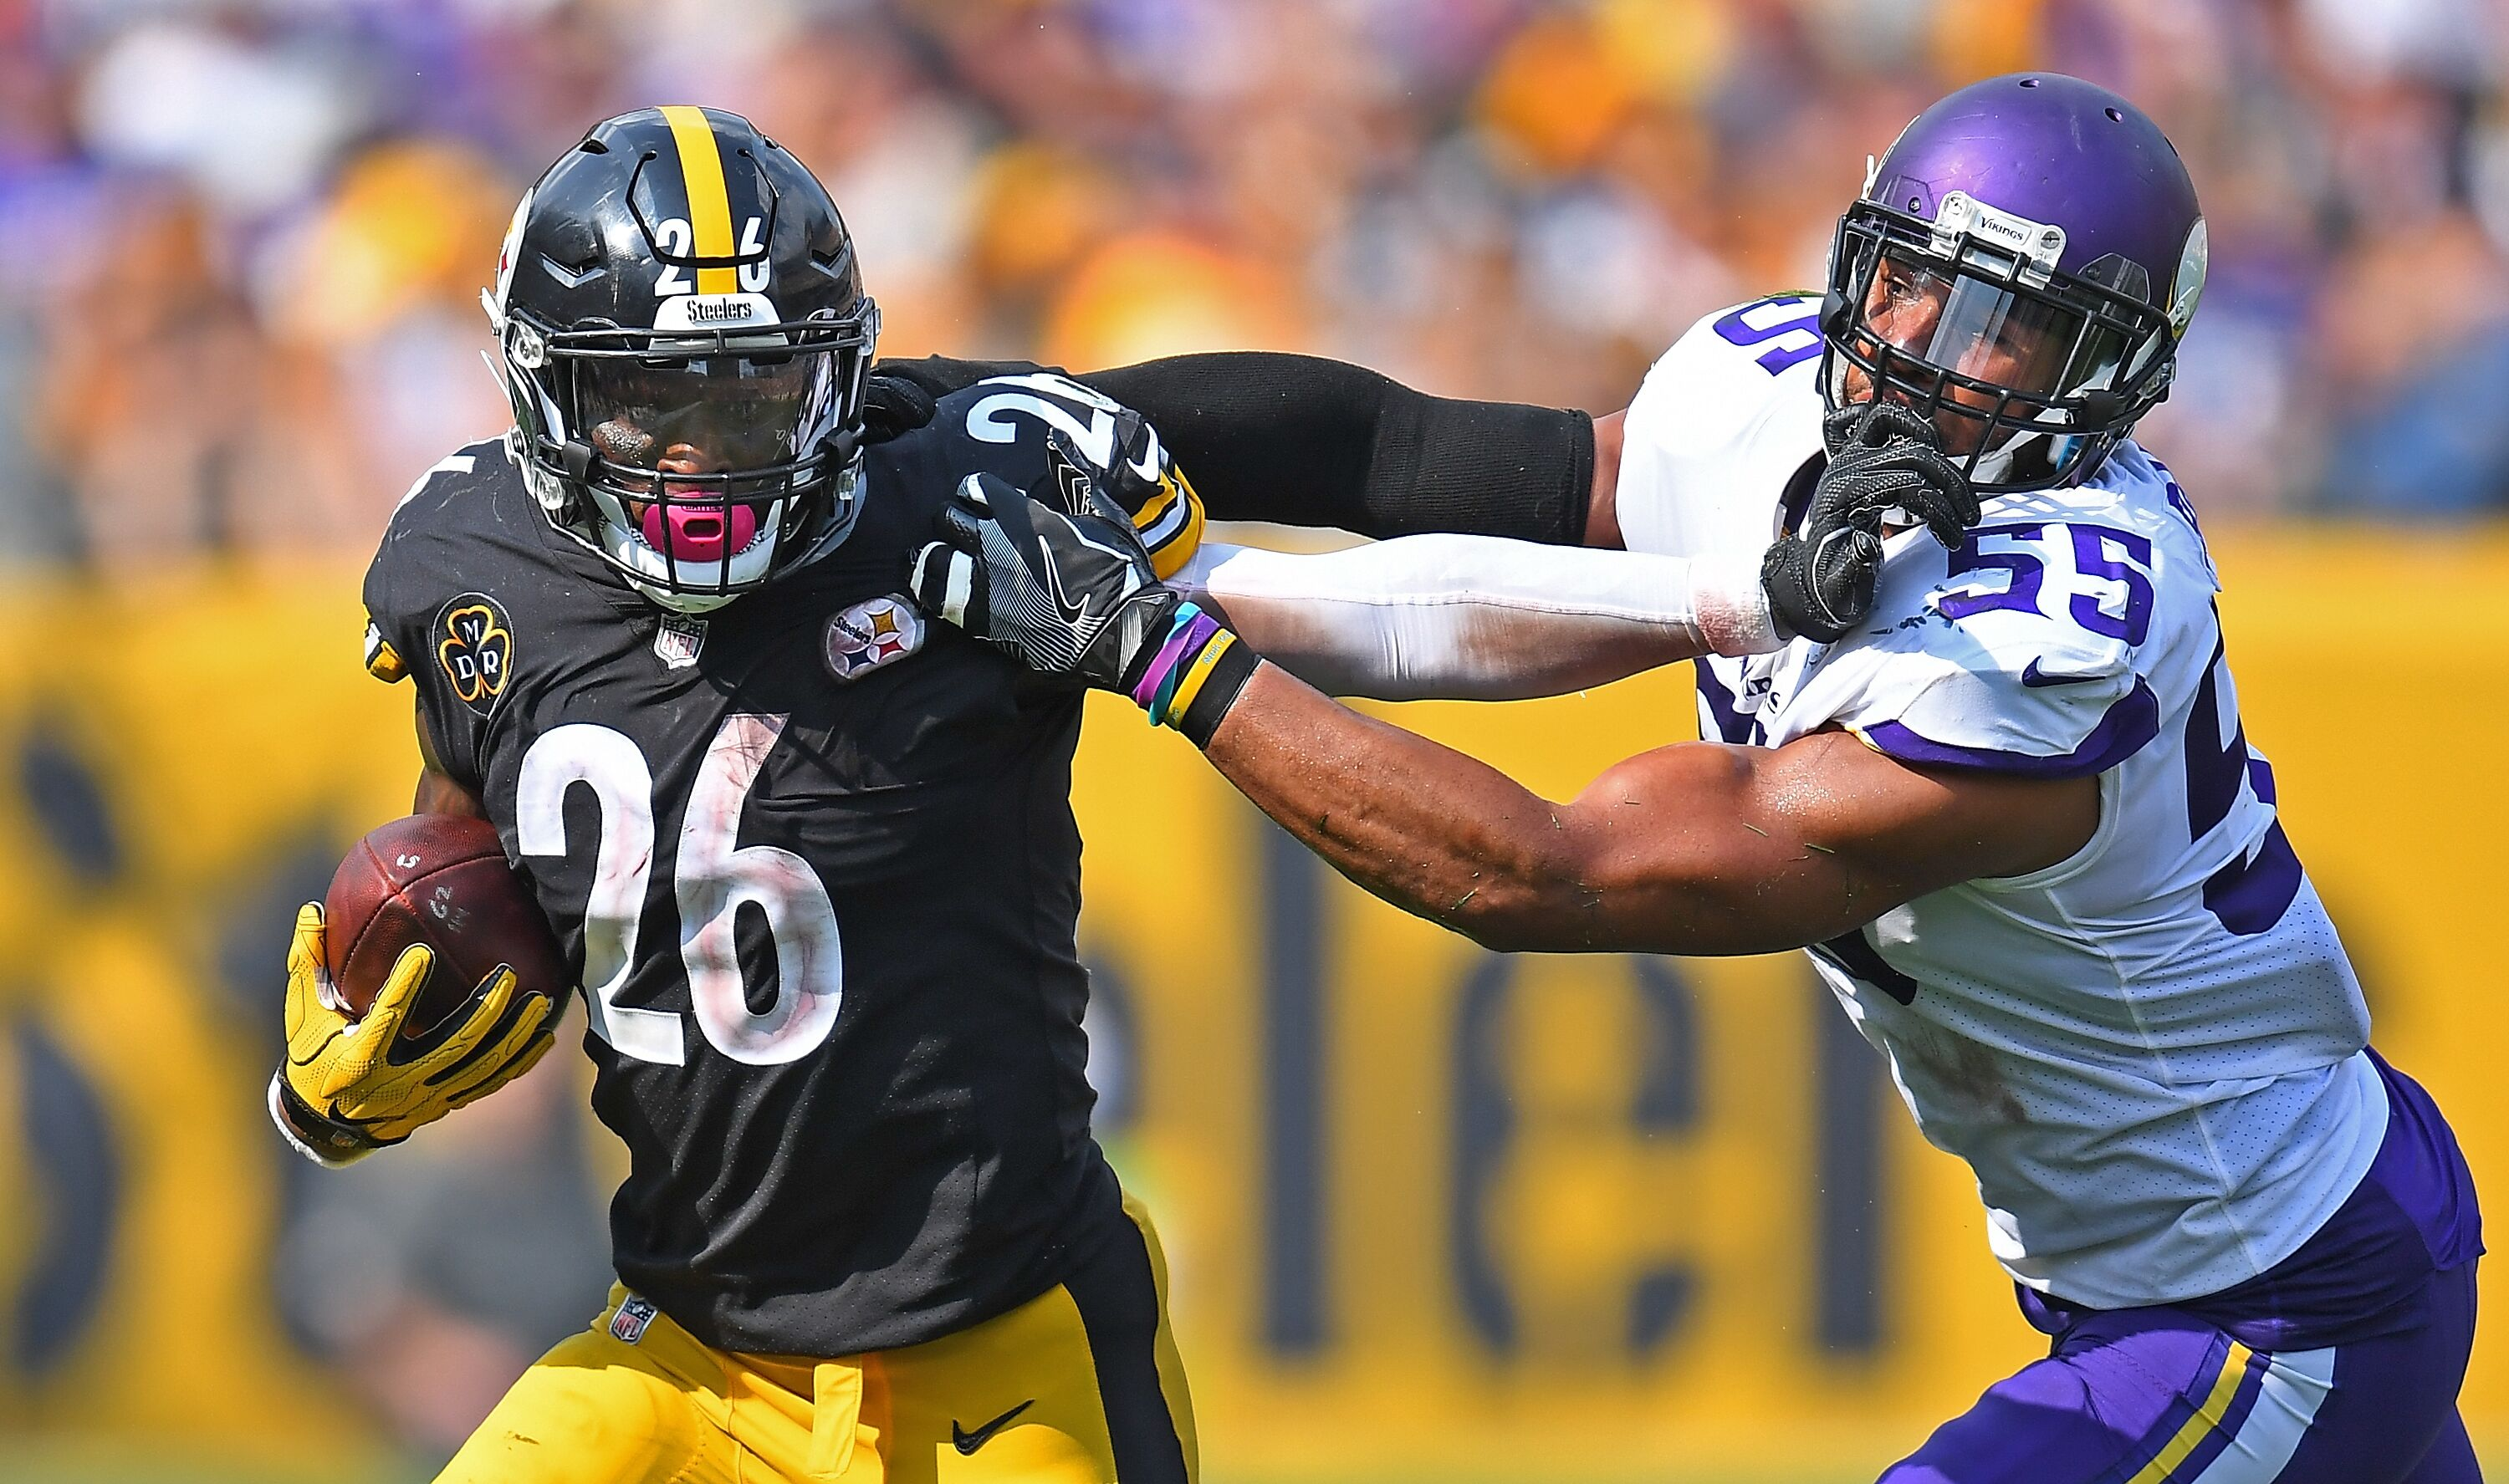 Pittsburgh Steelers Football Game Live Stream, schedule, How to watch online for free and Here are game-by-game predictions for the season. The Pittsburgh Steelers' opponents for next season finished below collectively last season, but the franchise won't be fooled into thinking that's a major advantage this time around.